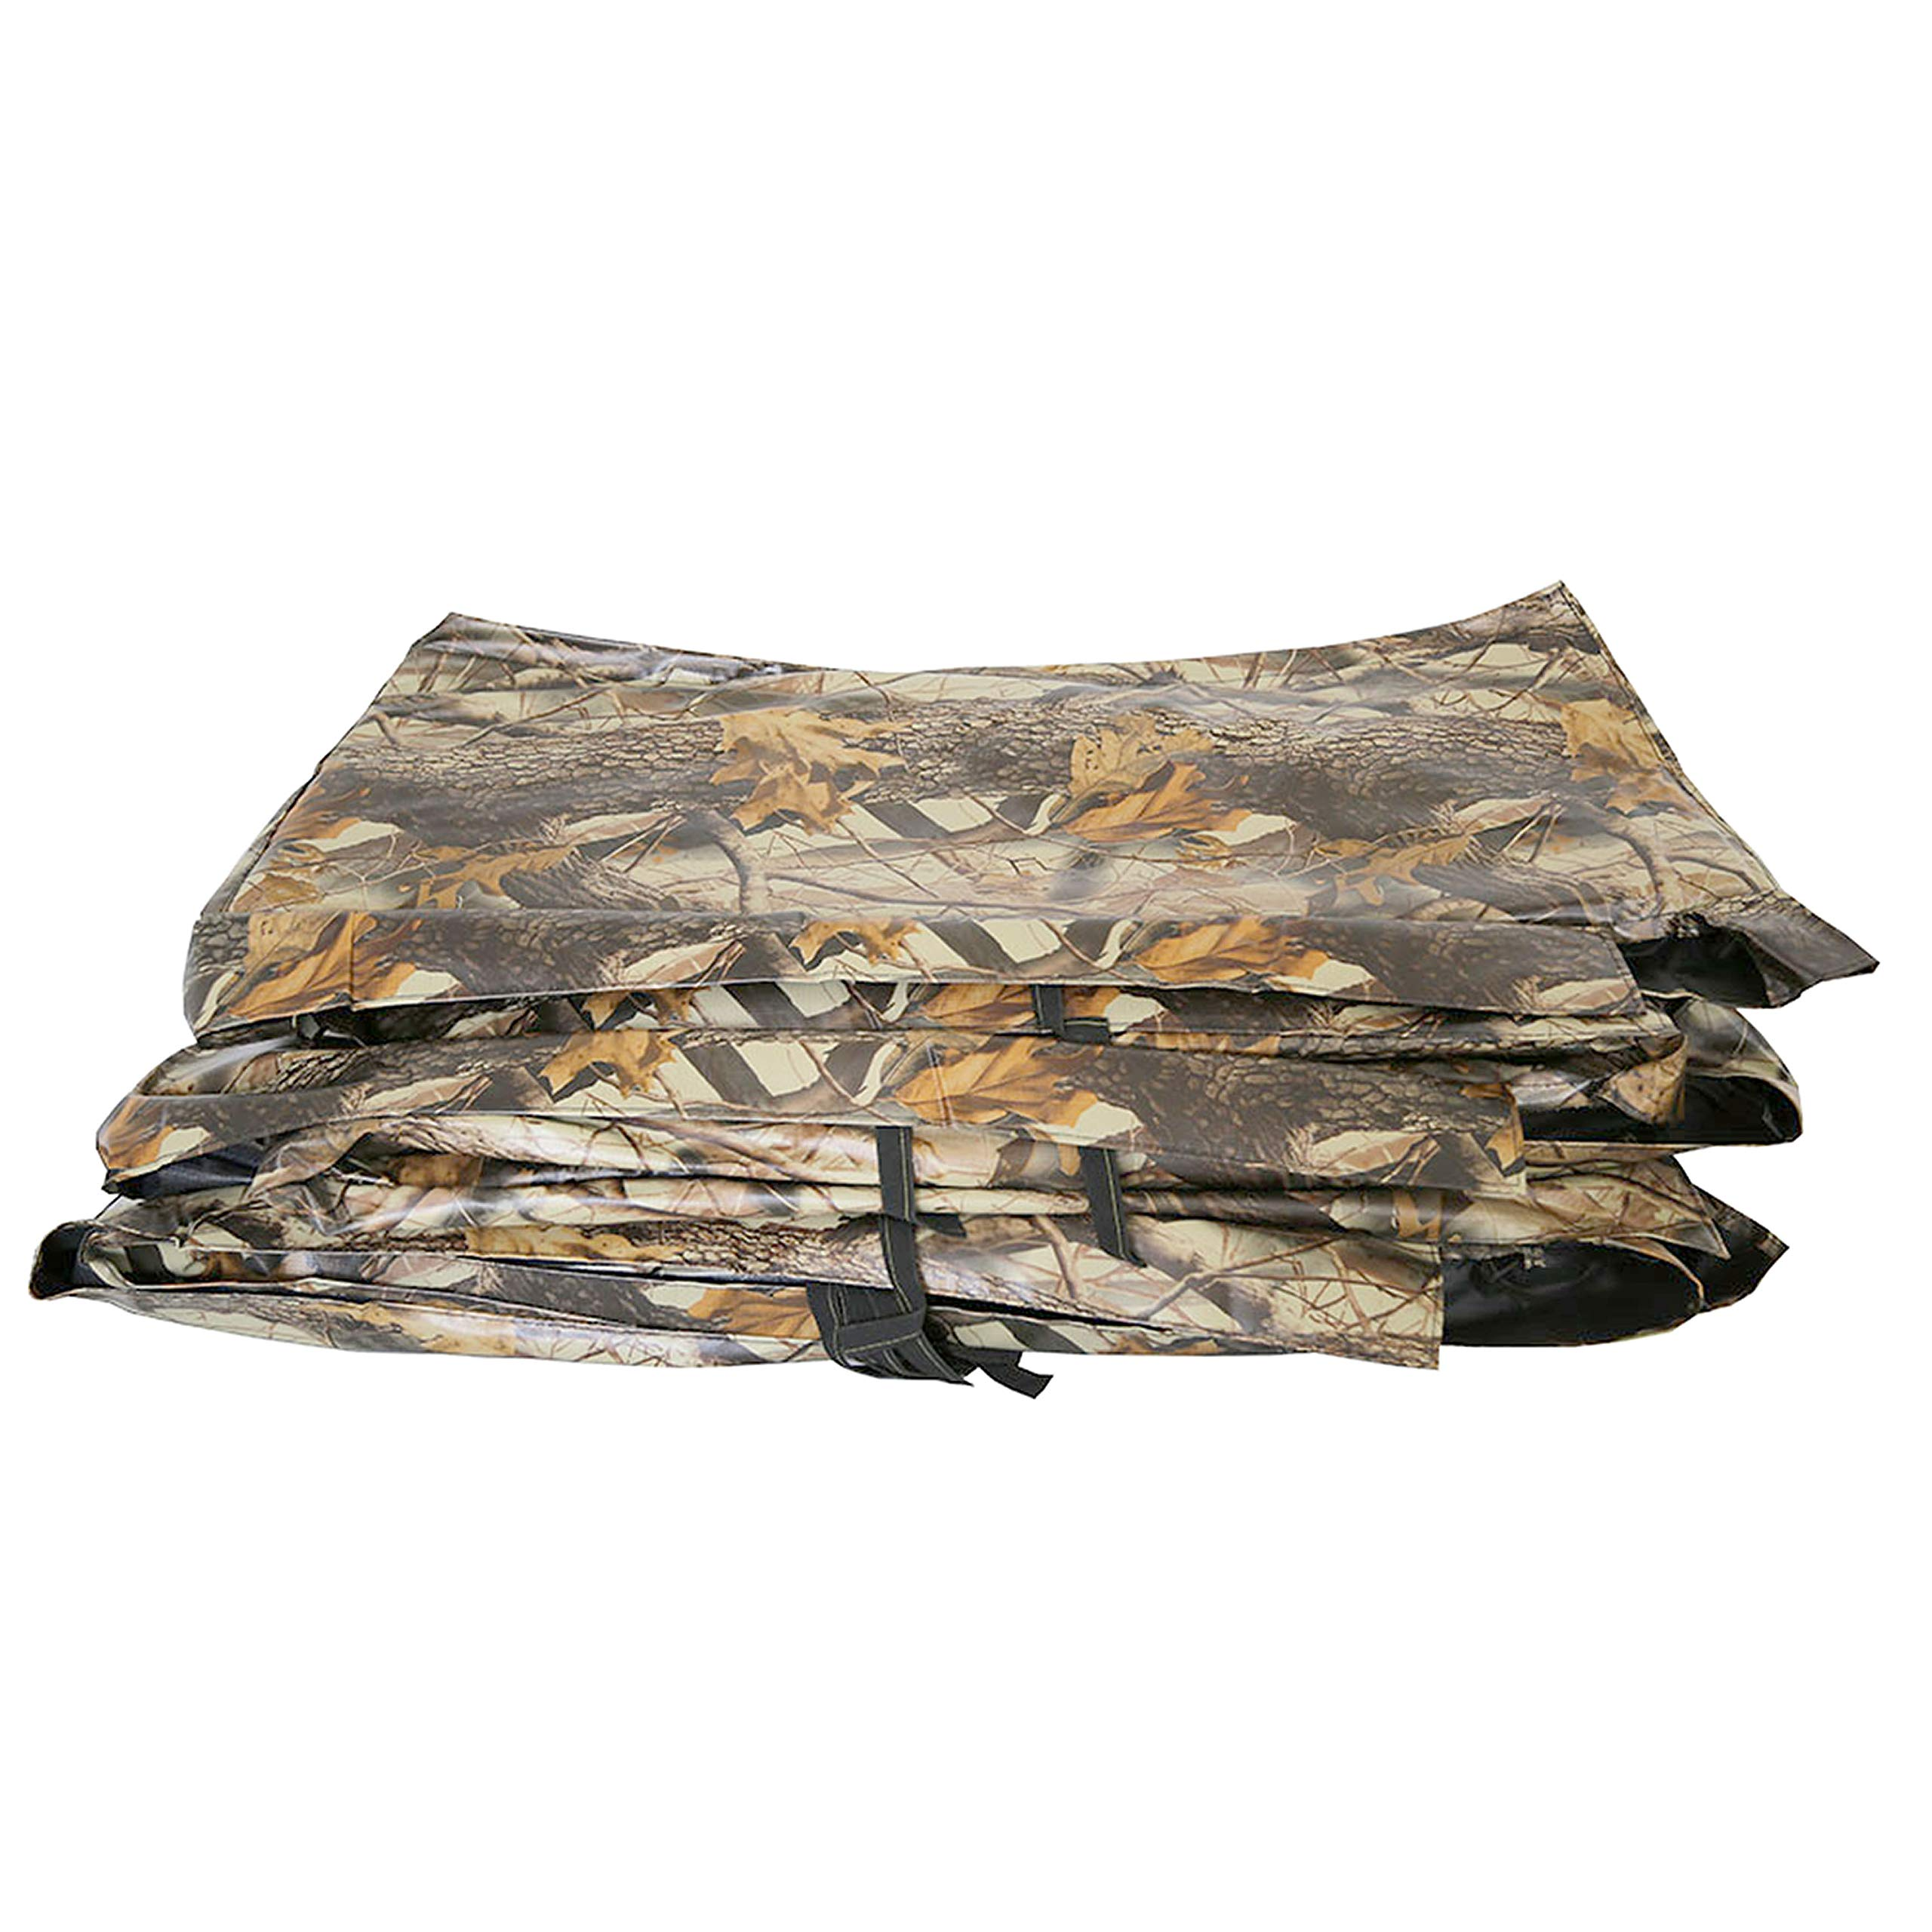 Skywalker Trampolines Camo 12' Round Spring Pad by Skywalker Trampolines